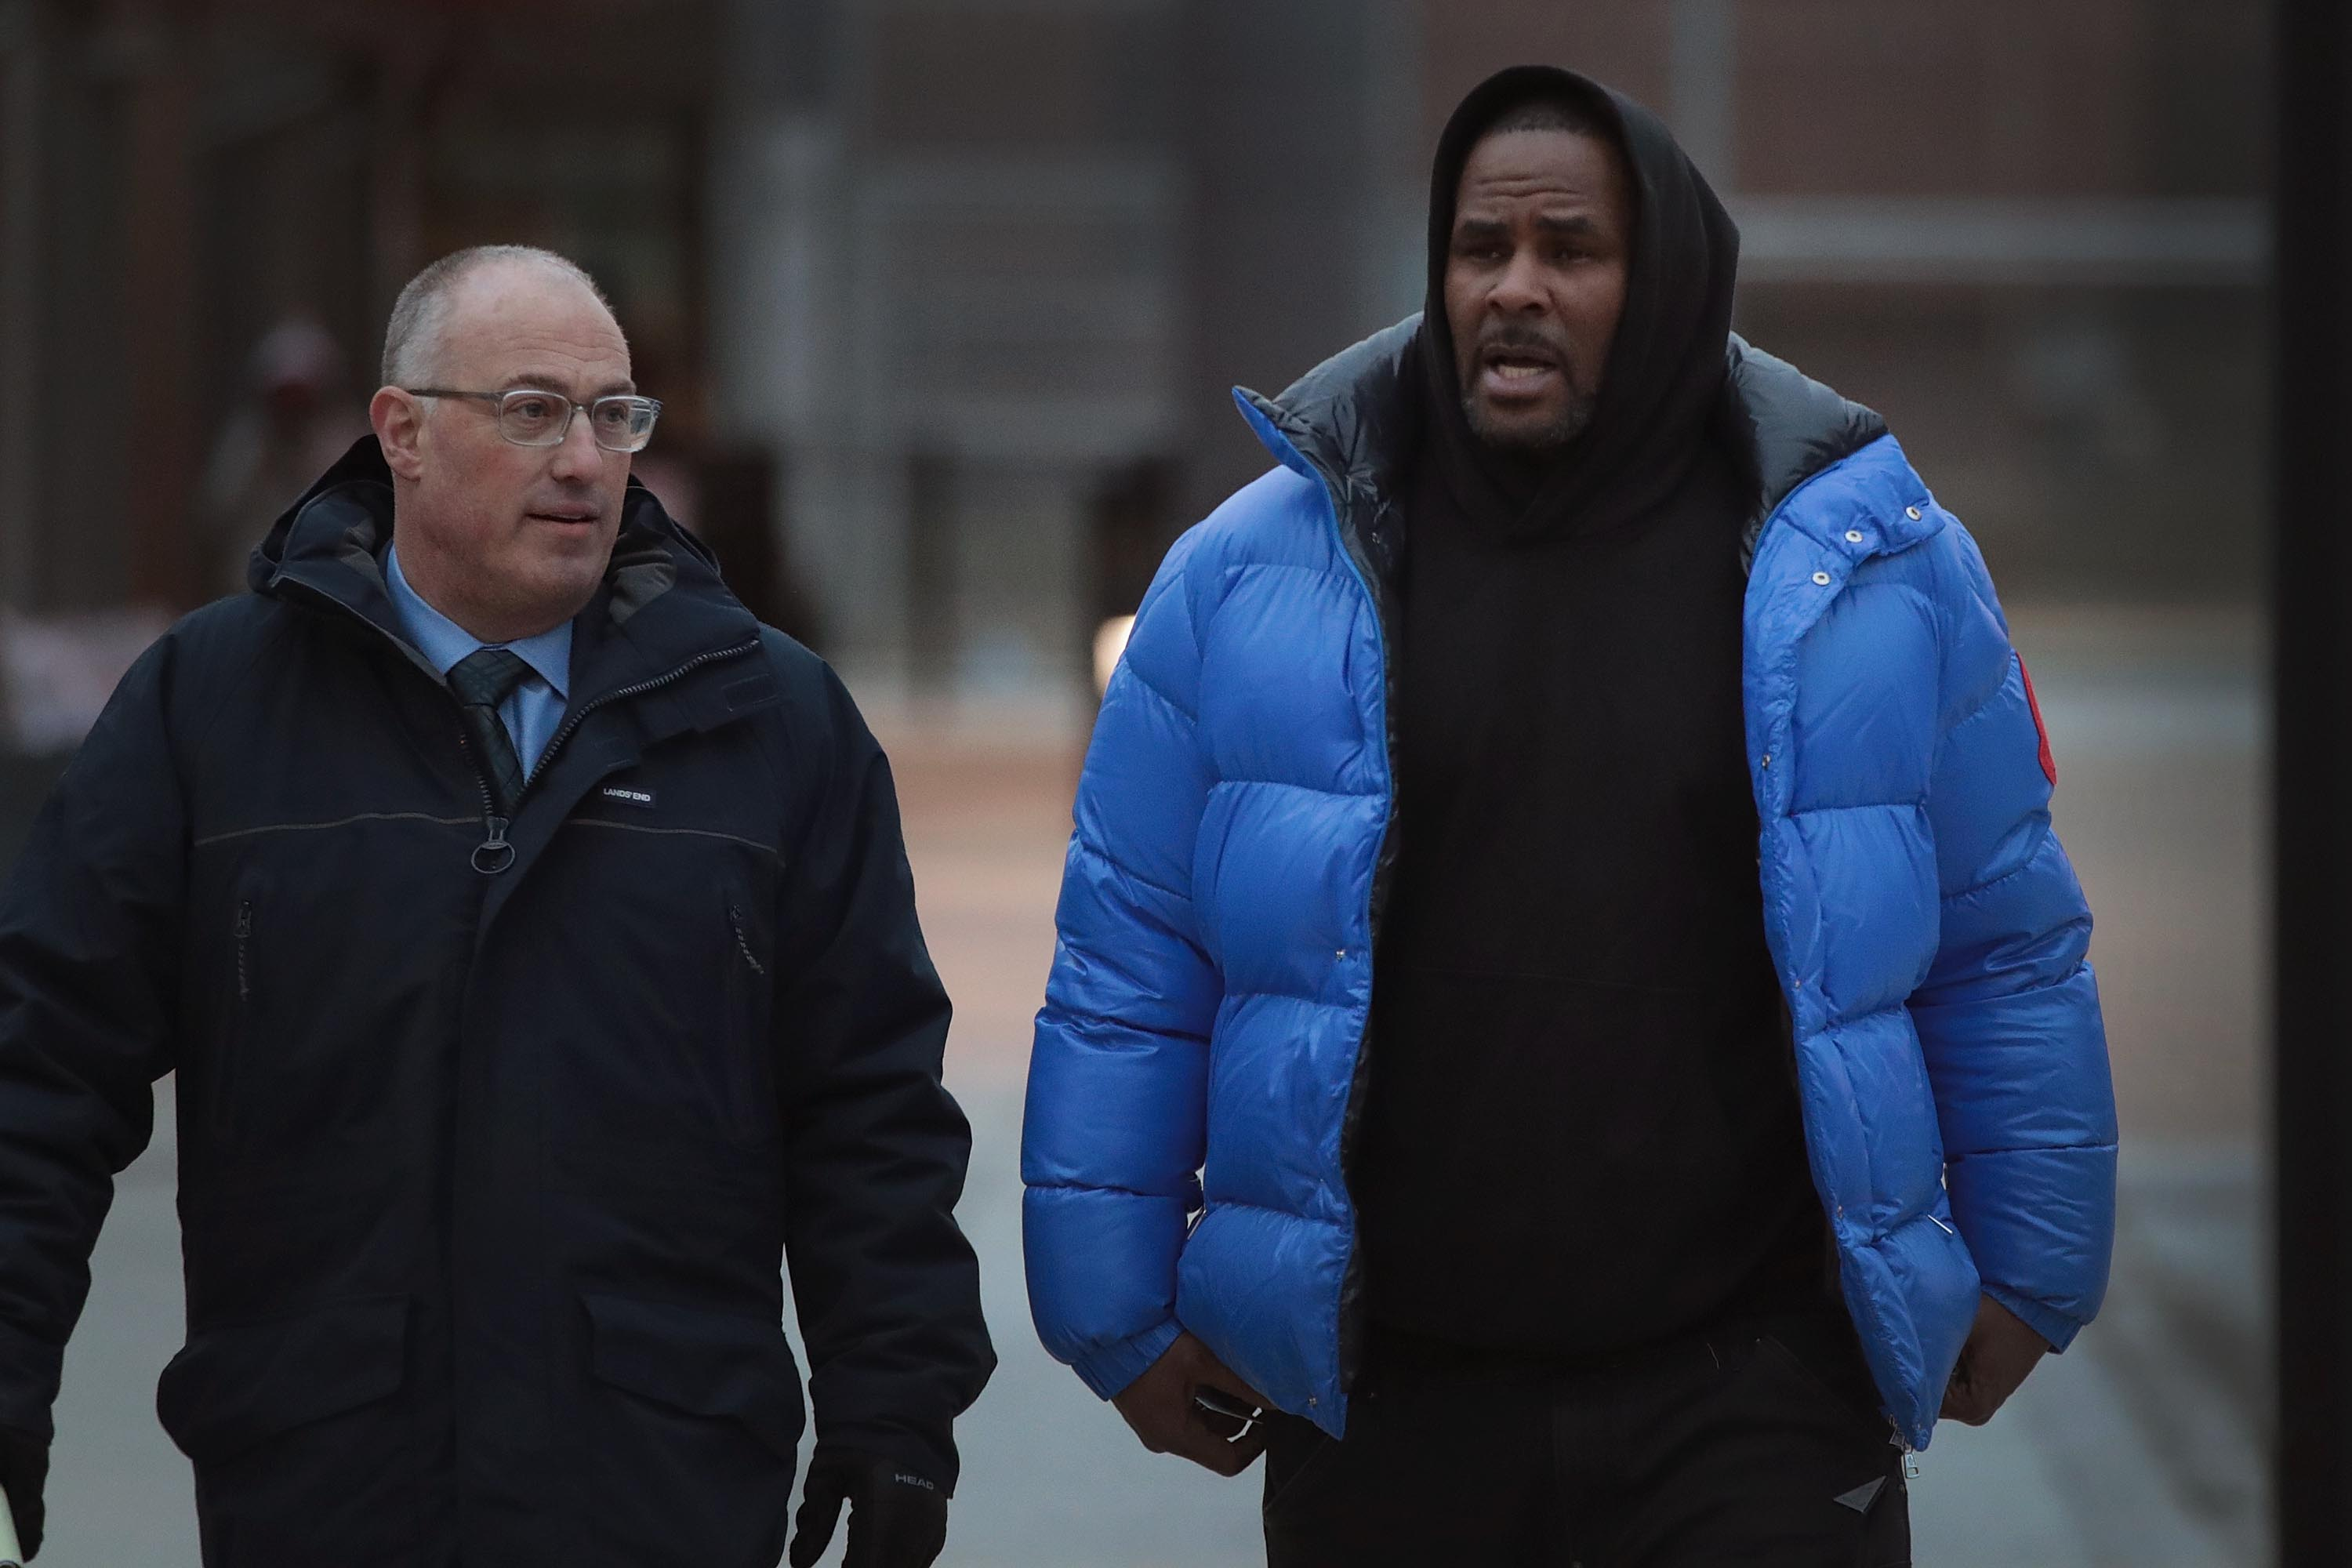 R&B singer R. Kelly (R) and his attorney Steve Greenberg leave Cook County jail after Kelly posted $100 thousand bond on February 25, 2019 in Chicago, Illinois.